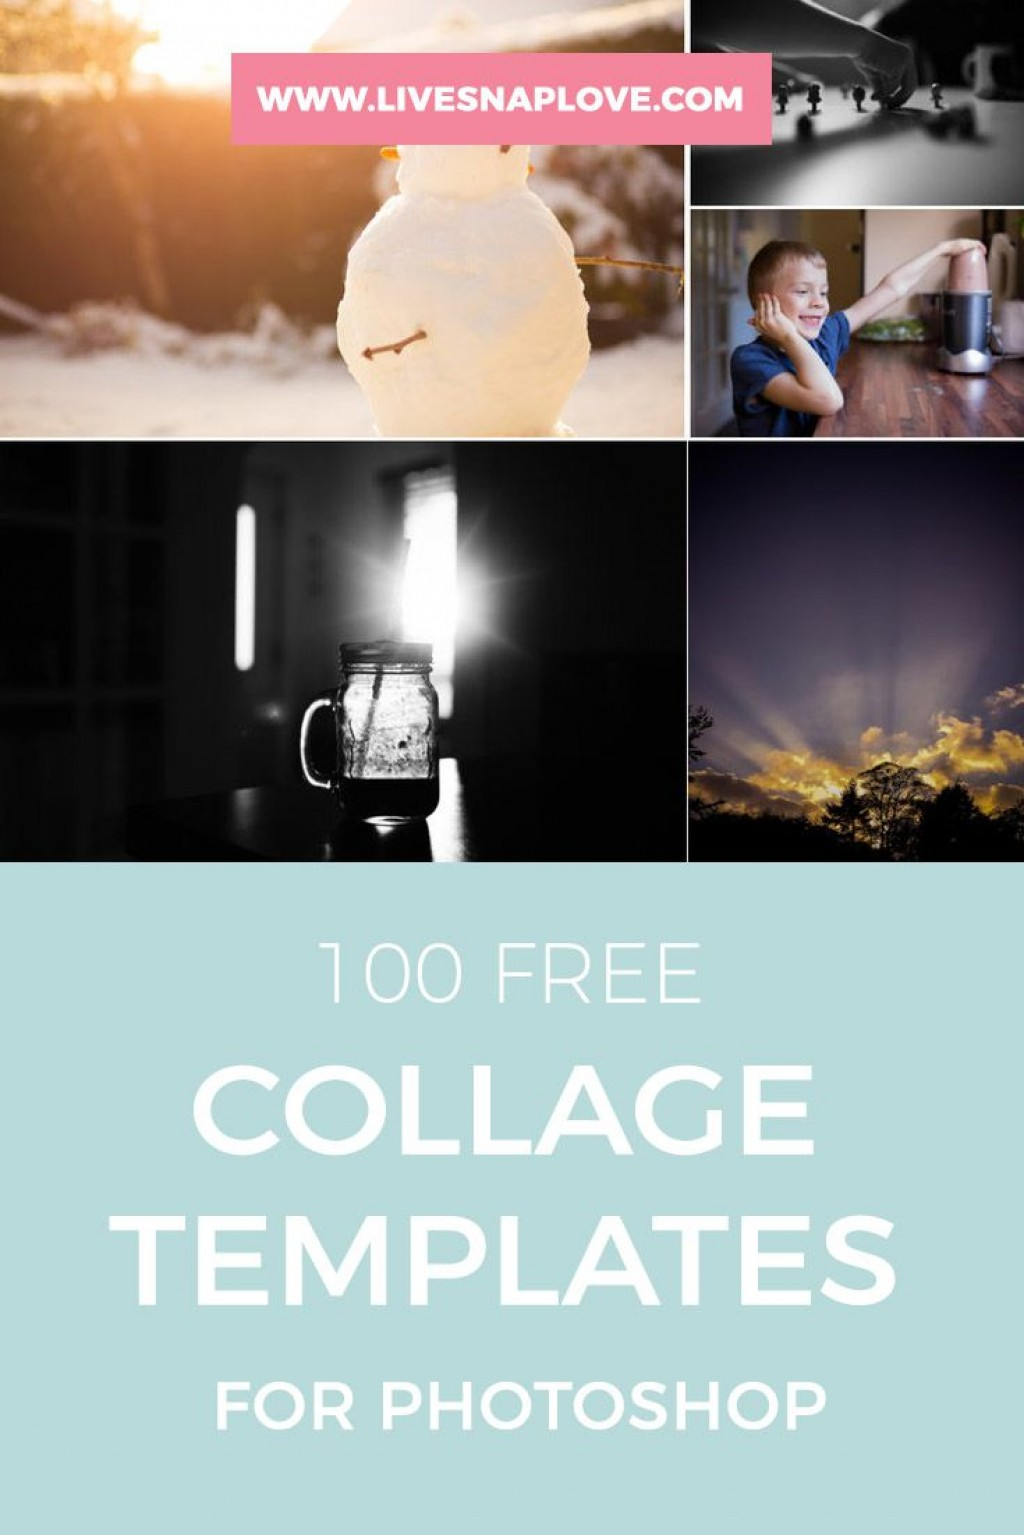 002 Striking Free Photoshop Collage Template Example  Templates Psd Download Photo For ElementLarge